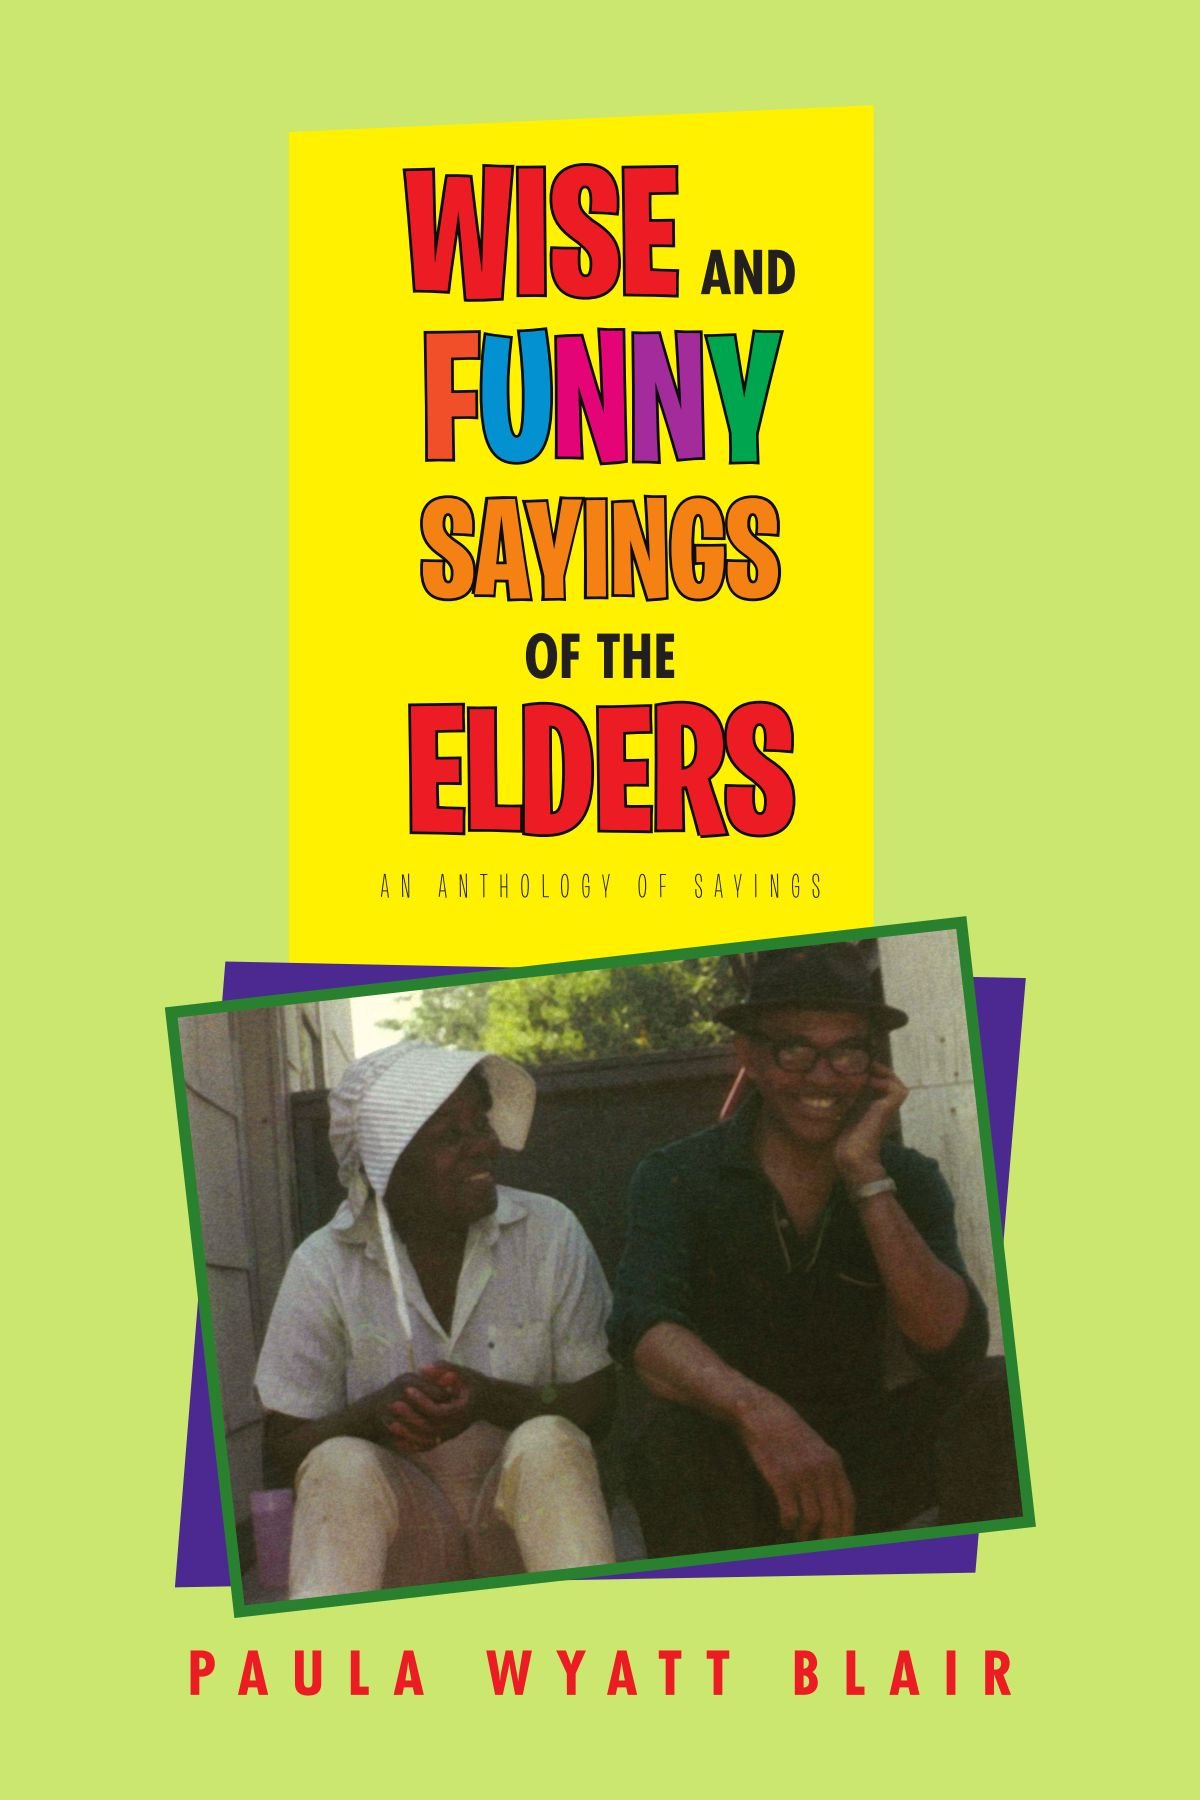 Wise And Funny Sayings Of The Elders: An Anthology of Sayings